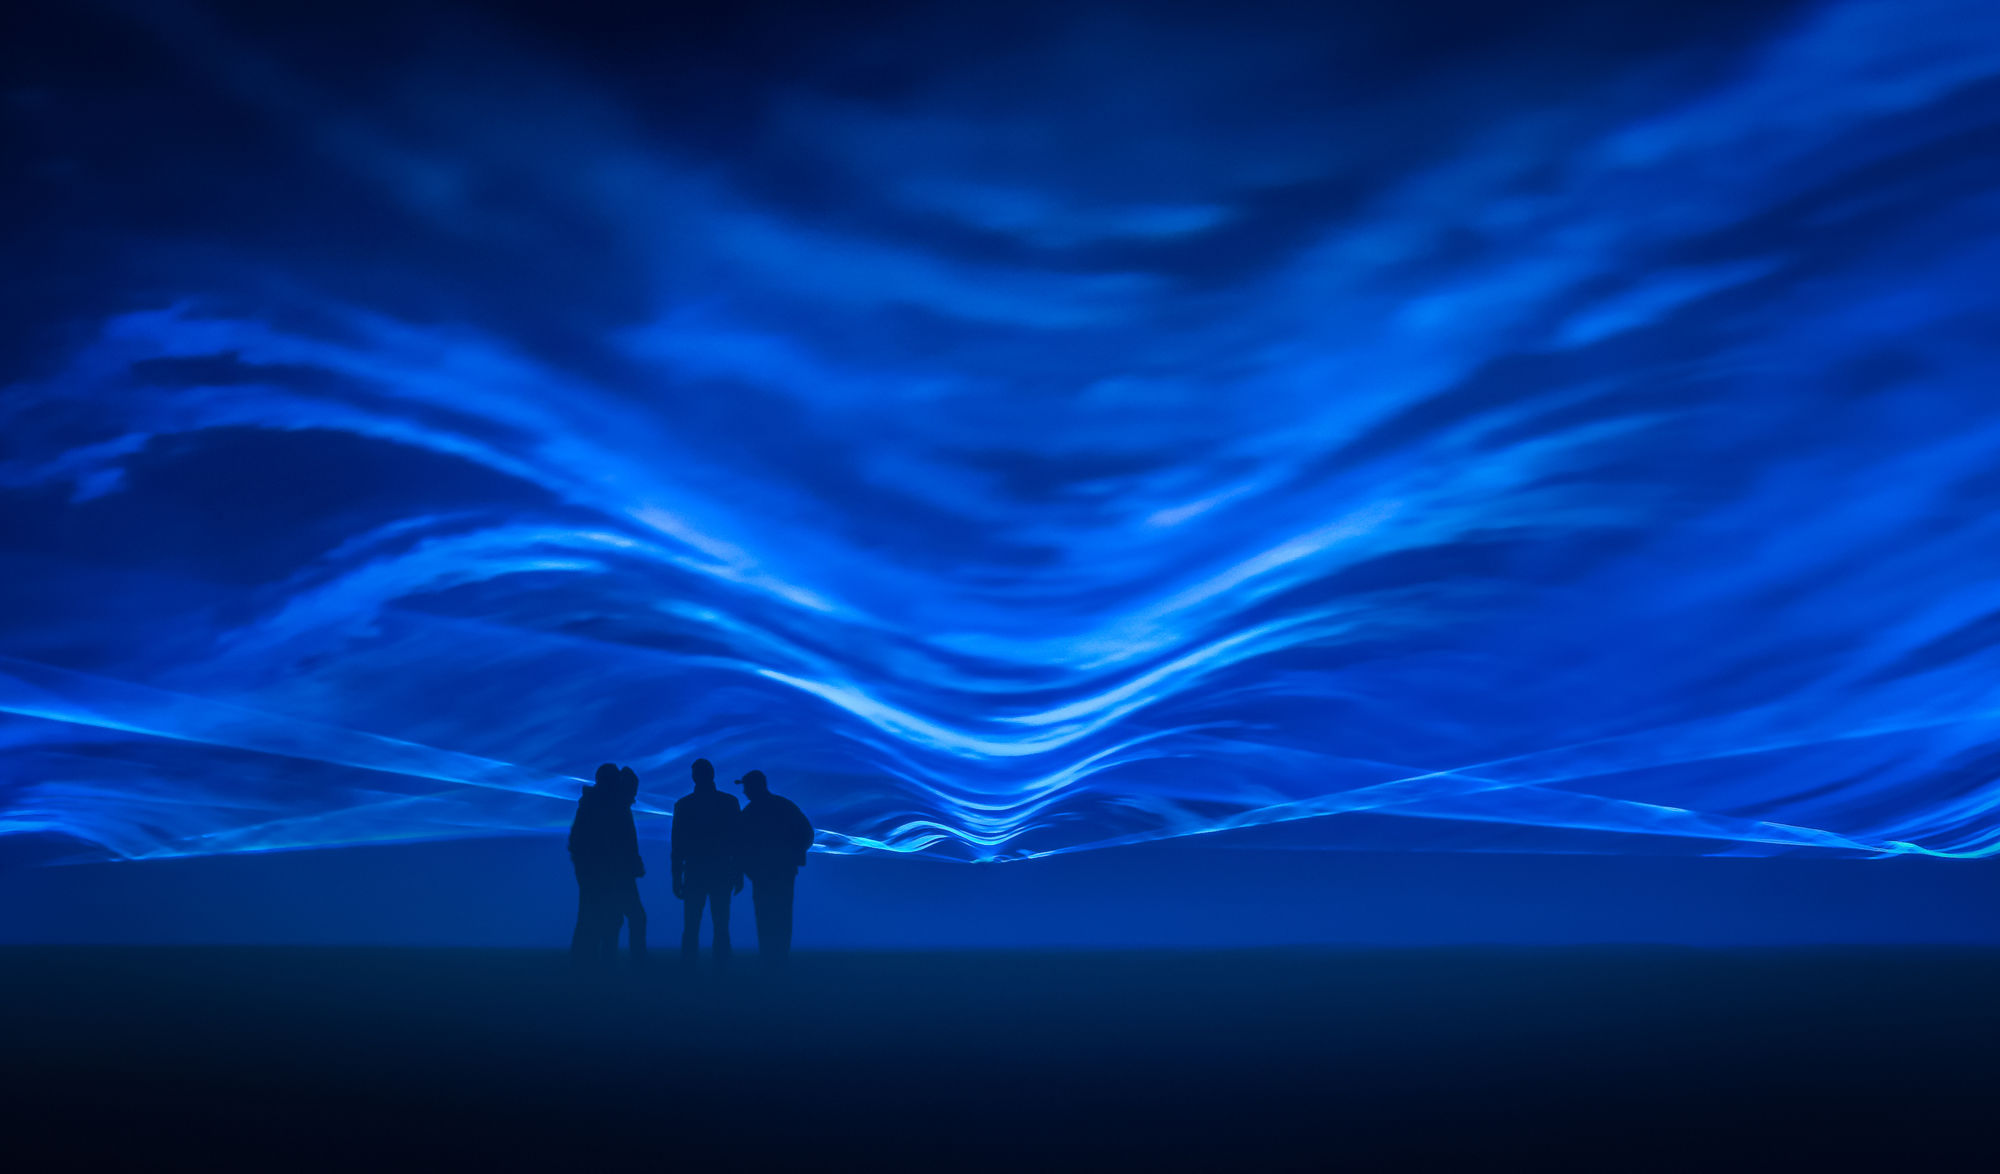 Dutch artist Daan Roosegaarde, whose works have included   Waterlicht  , an aetherial series of aquatic projections depicting rising tides